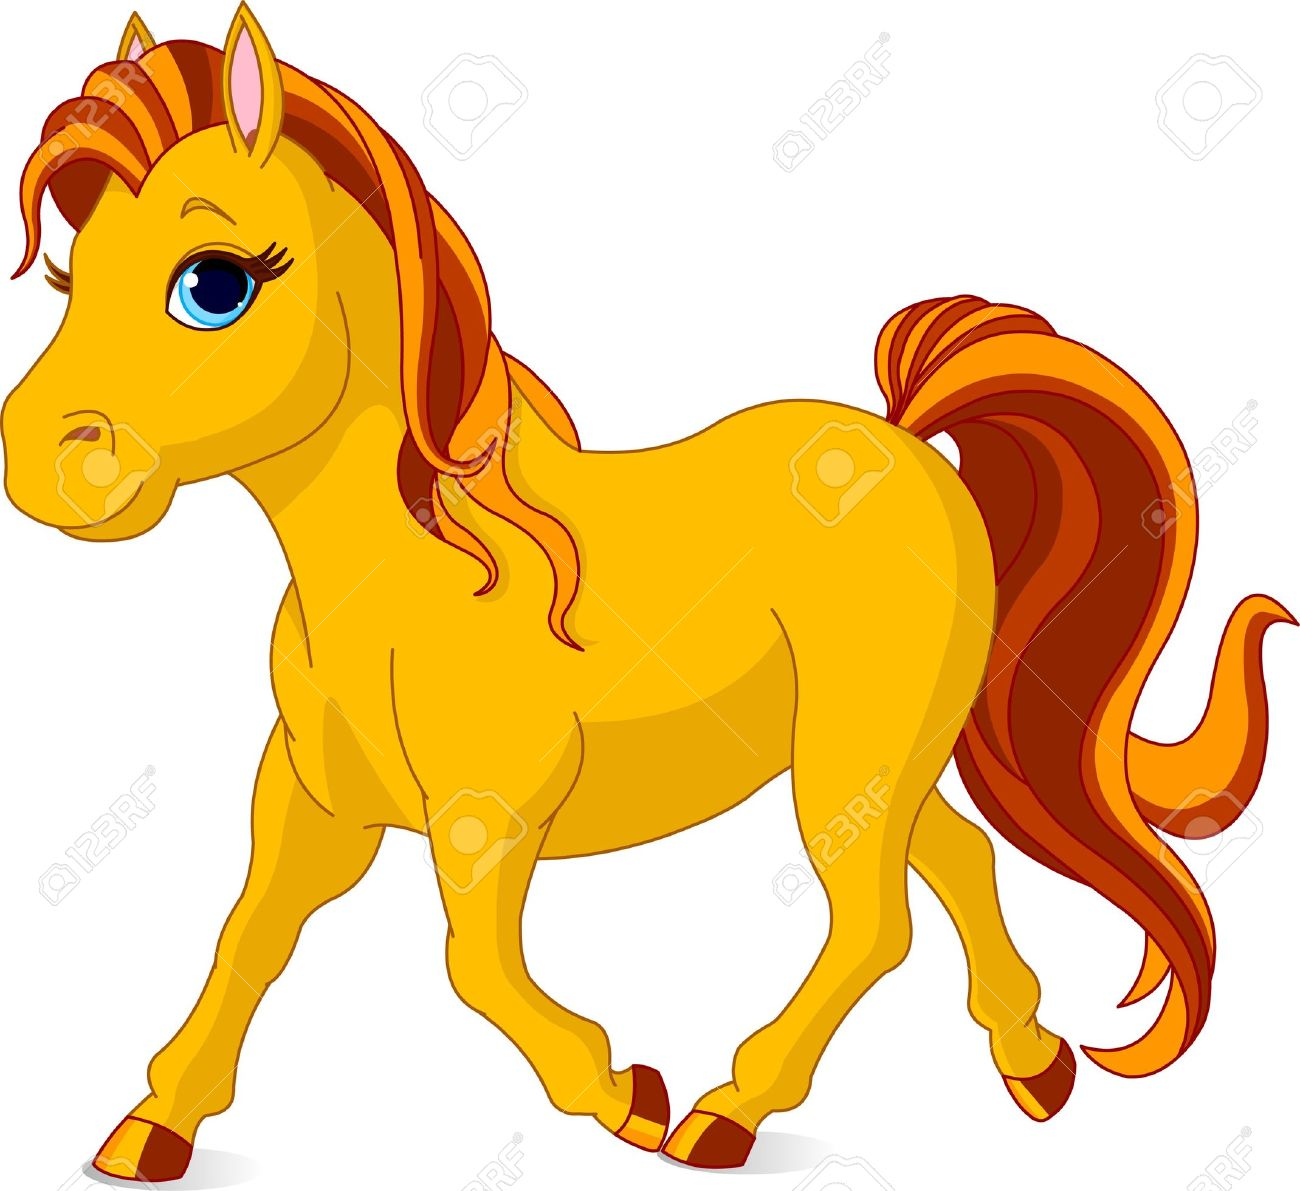 Cavallo clipart #8, Download drawings